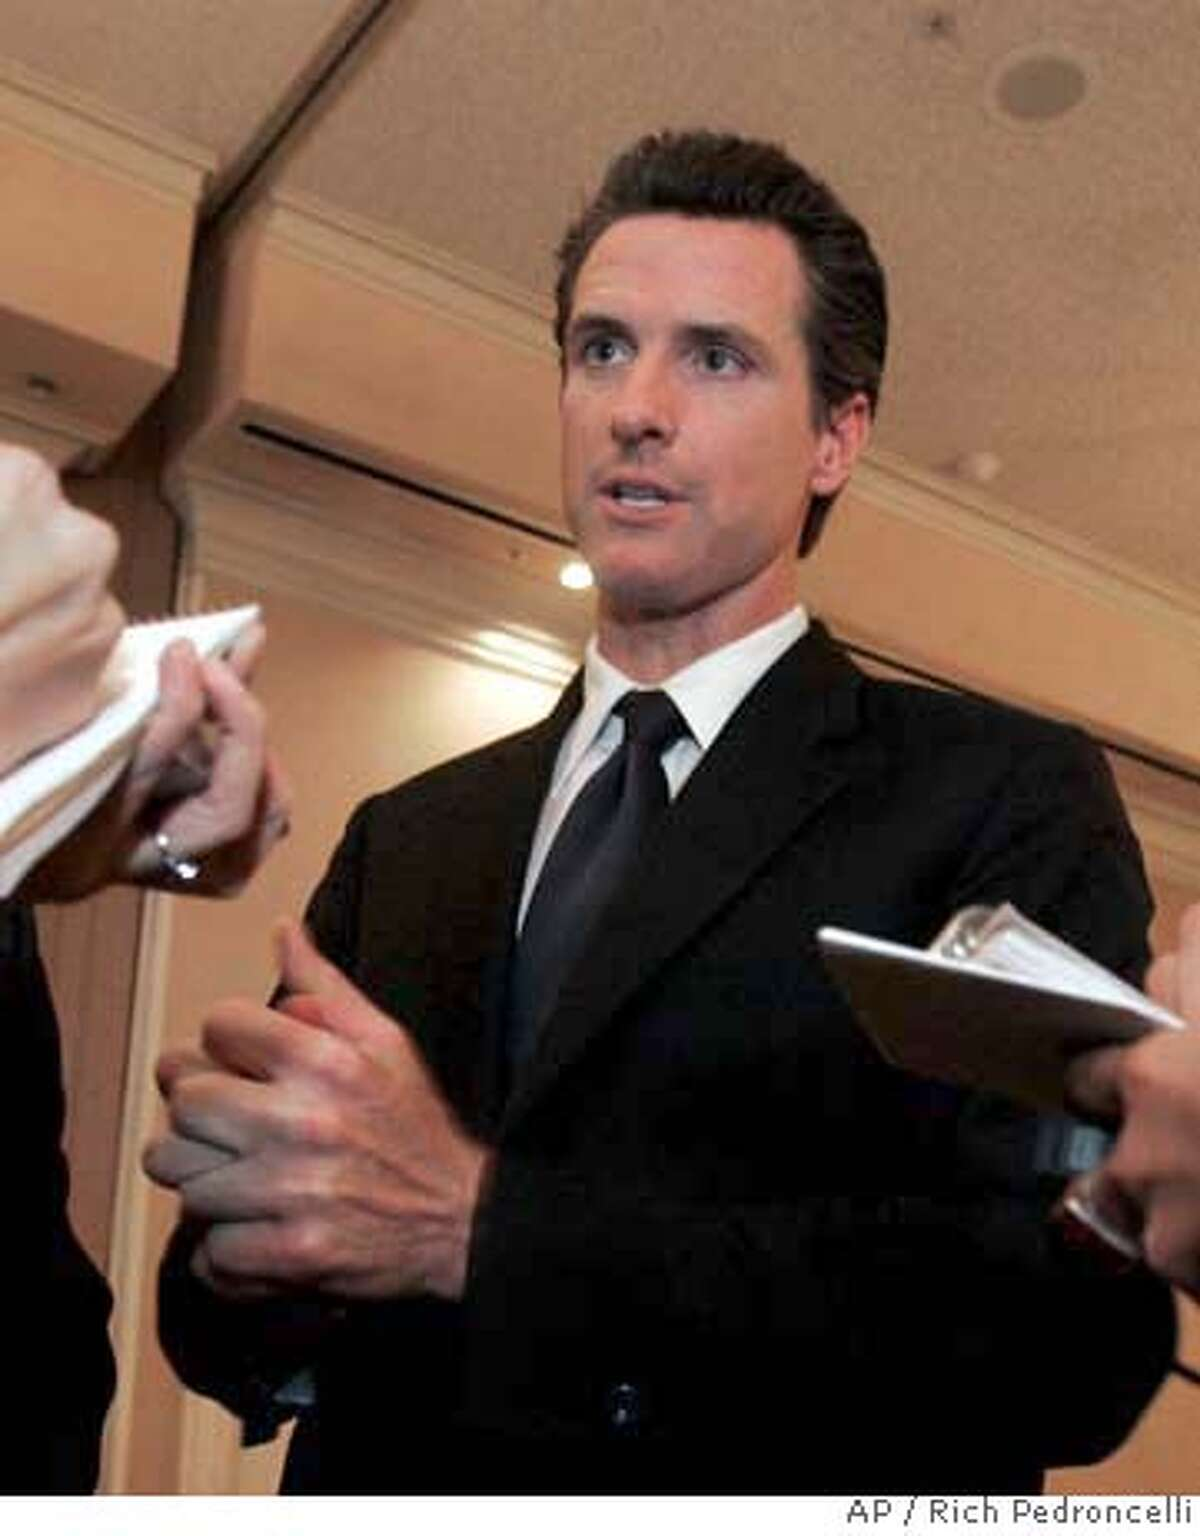 ###Live Caption:San Francisco Mayor Gavin Newsom talks to reporters after his appearance before the Sacramento Press Club in Sacramento, Calif., Tuesday, March 25, 2008. Newsom is criticizing deep cuts to California's Medi-Cal program and says he is considering a lawsuit to reinstate some of the funding. (AP Photo/Rich Pedroncelli)###Caption History:San Francisco Mayor Gavin Newsom talks to reporters after his appearance before the Sacramento Press Club in Sacramento, Calif., Tuesday, March 25, 2008. Newsom is criticizing deep cuts to California's Medi-Cal program and says he is considering a lawsuit to reinstate some of the funding. (AP Photo/Rich Pedroncelli) Ran on: 03-26-2008 San Francisco Mayor Gavin Newsom says the 10 percent reduction in Medi-Cal payments would impose an unfair burden on the citys taxpayers. Ran on: 03-26-2008 San Francisco Mayor Gavin Newsom says the 10 percent reduction in Medi-Cal payments would impose an unfair burden on the citys taxpayers. Ran on: 04-01-2008 Mayor Gavin Newsom has divested himself of local business holdings but still has plenty of financial connections in Napa County and the Lake Tahoe area. Ran on: 04-01-2008###Notes:Gavin Newsom###Special Instructions: